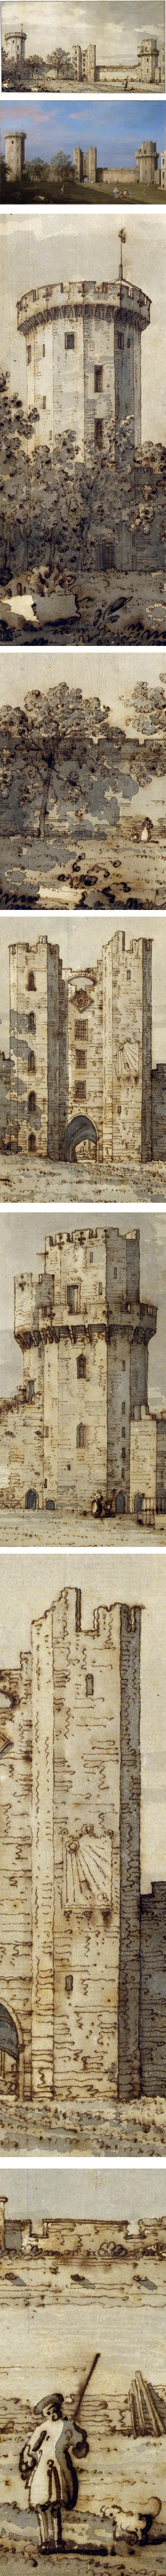 Warwick Castle: The East Front from the Courtyard, Canaletto (Giovanni Antonio Canal), pen and brown ink, gray wash